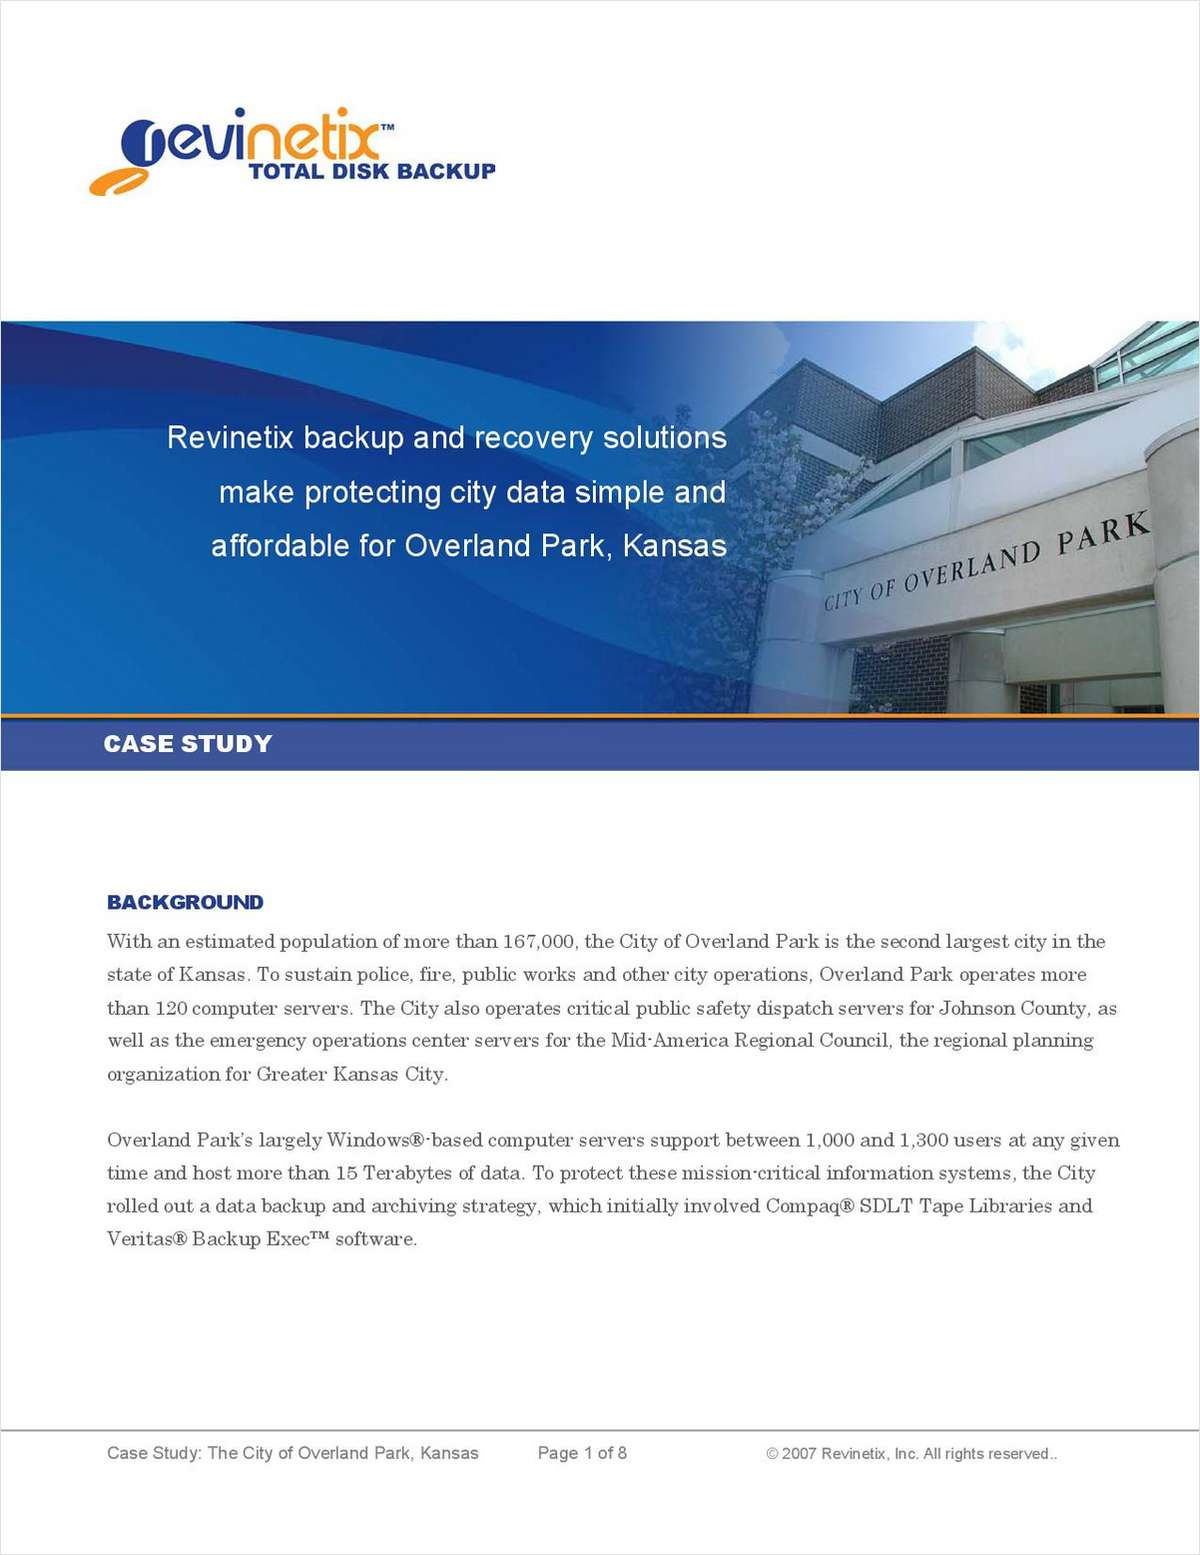 Revinetix backup and recovery solutions make protecting city data simple and affordable for Overland Park, Kansas